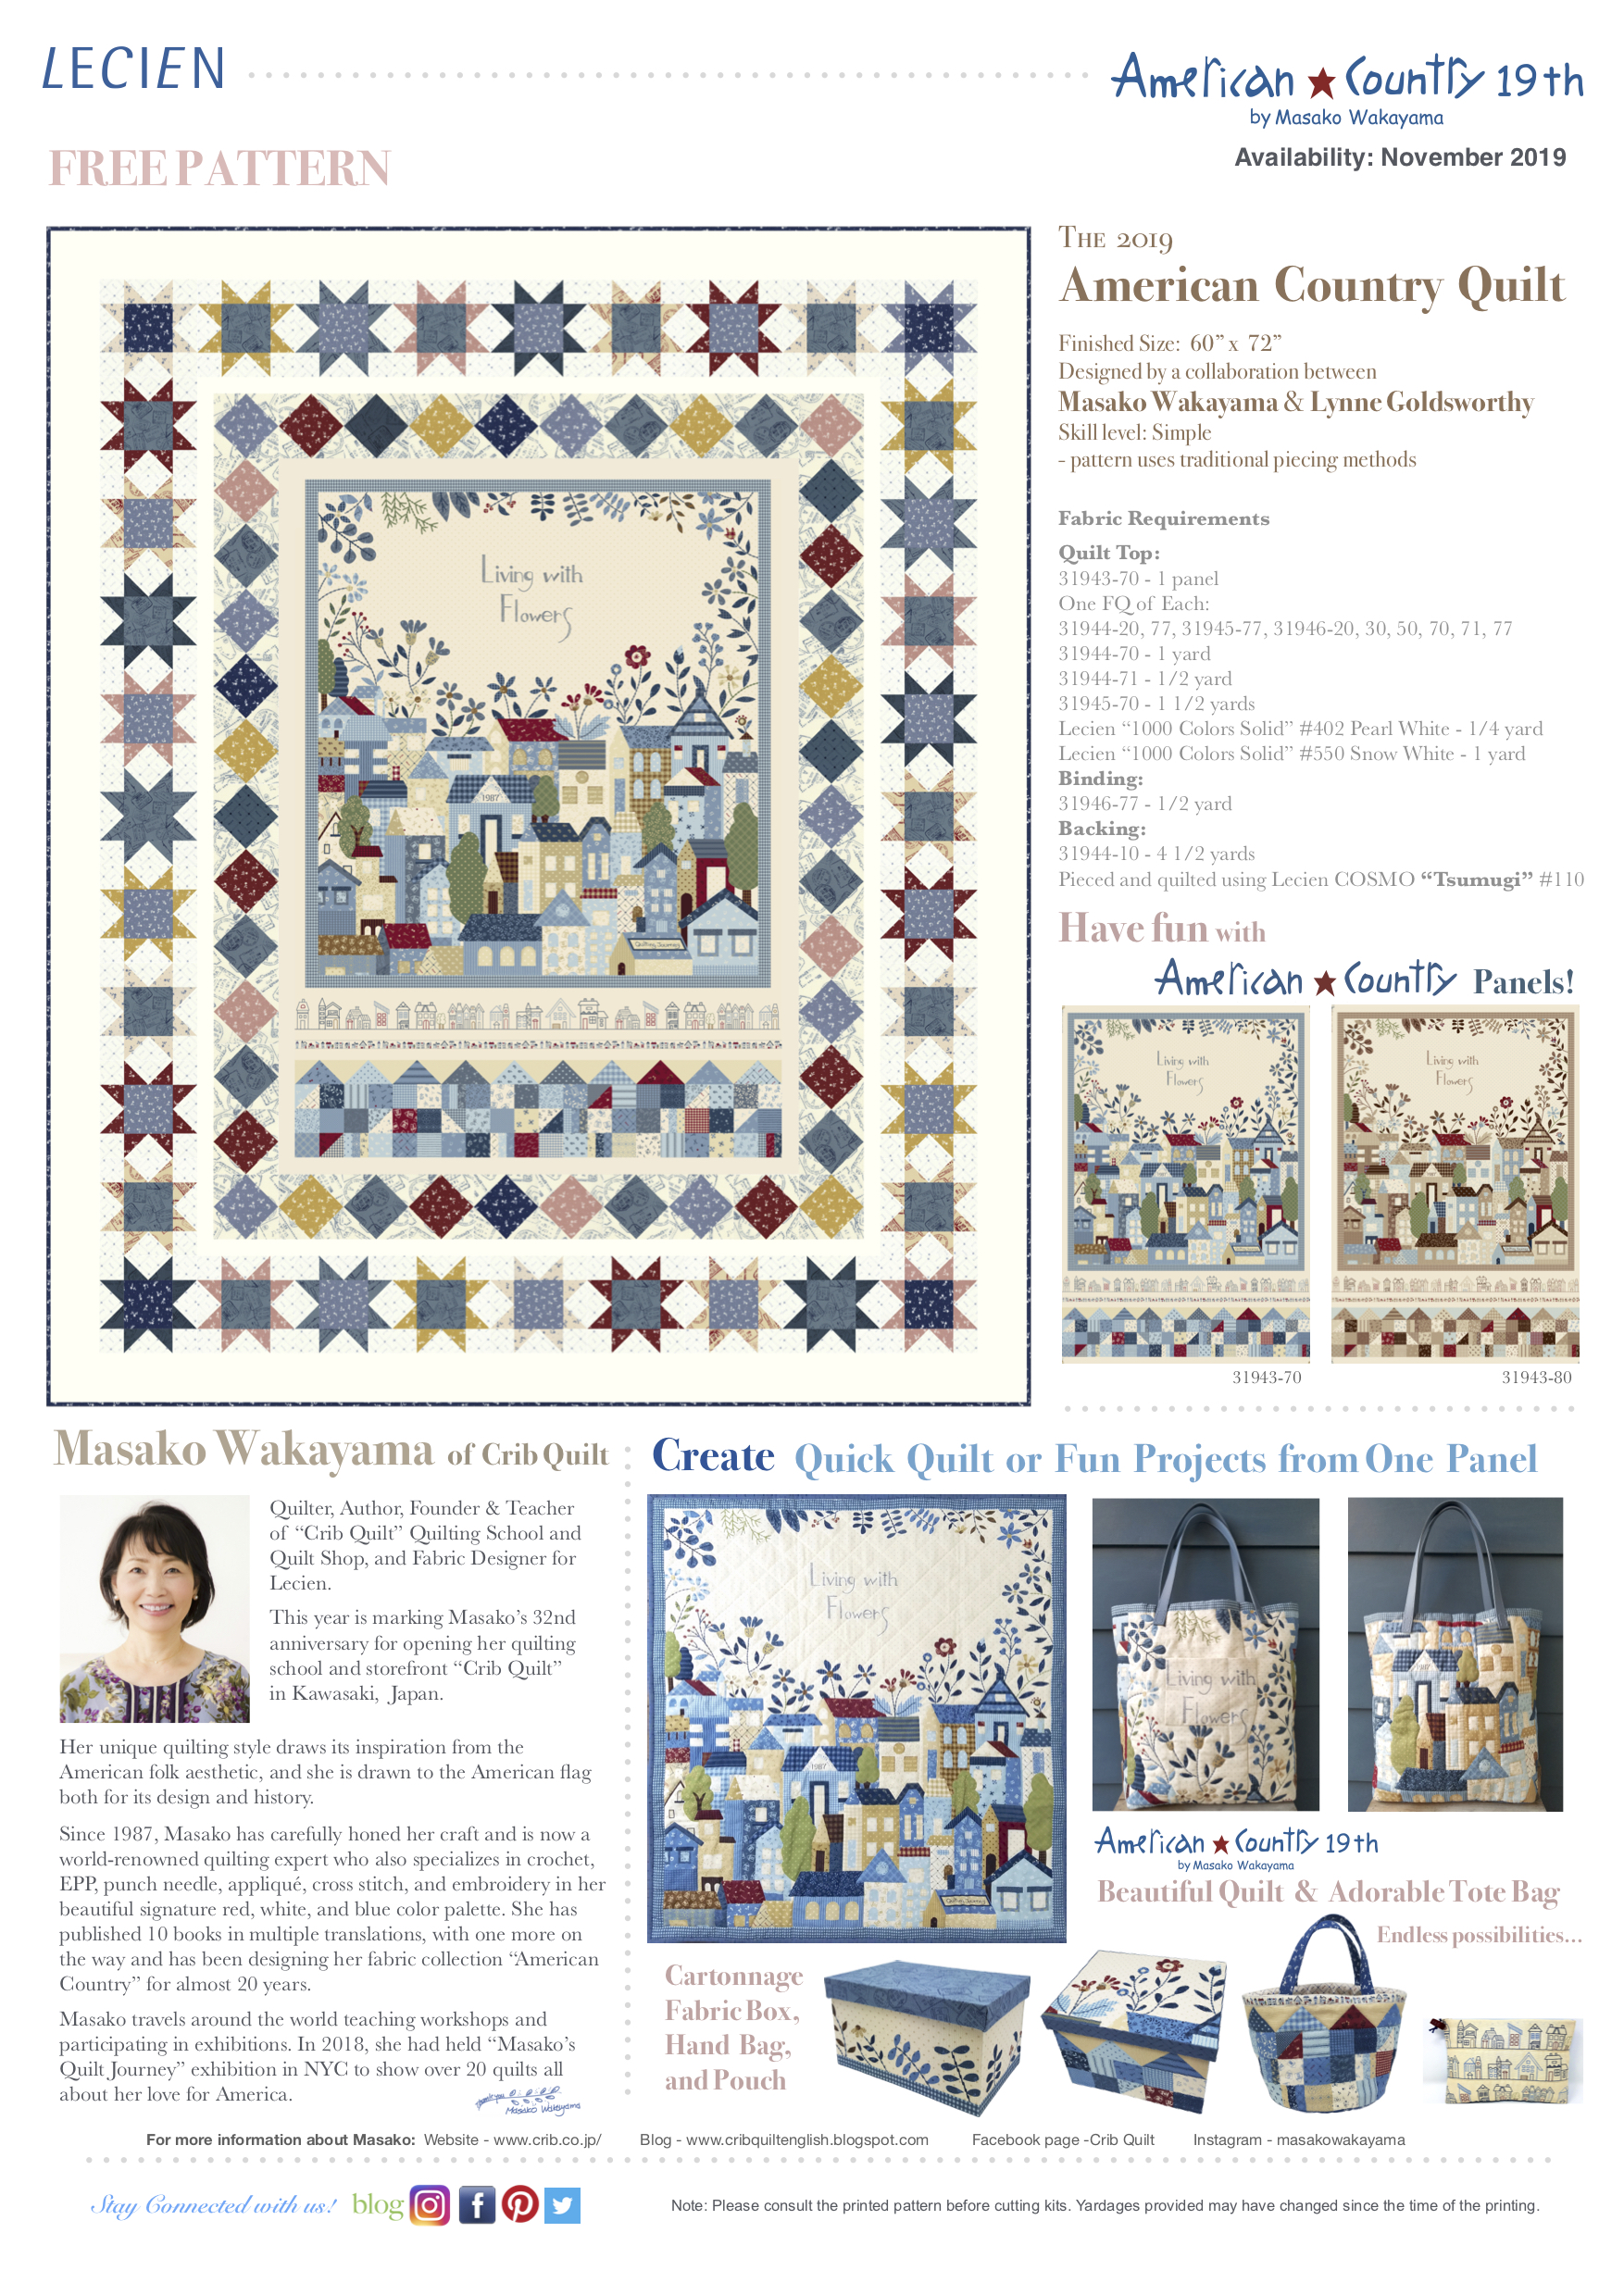 The American Country 19th Quilt